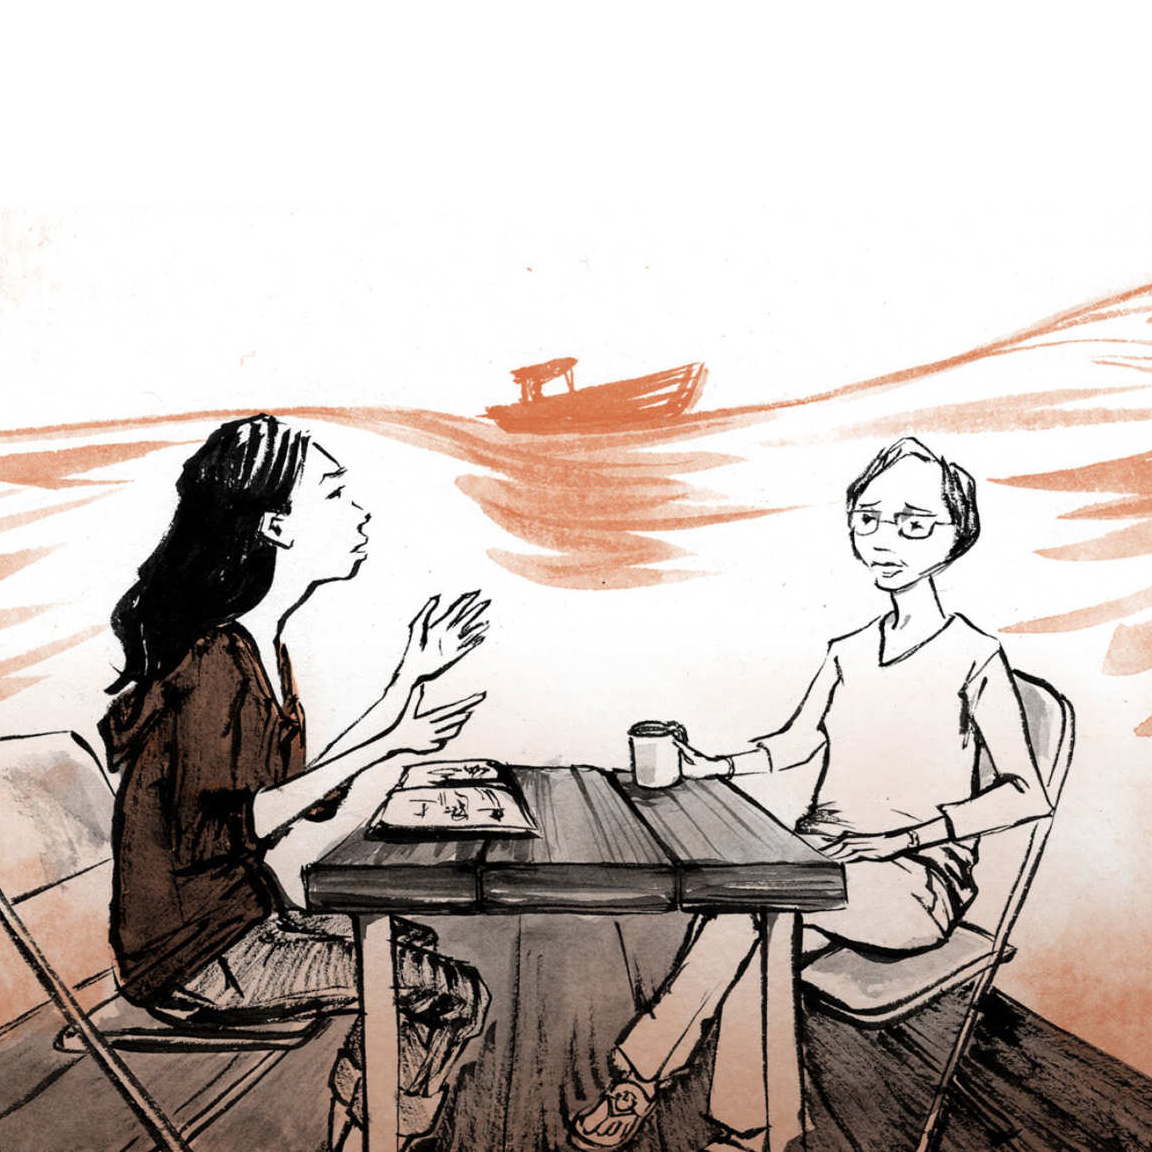 Vulture: Life As a Refugee Is Explored in the Stunning Comics Memoir The Best We Could Do - My only complaint about Thi Bui's debut graphic memoir, which tells the sweeping tale of her family's lives in Vietnam and the United States, relates to its title. The Best We Could Do is a fine moniker, but . . .